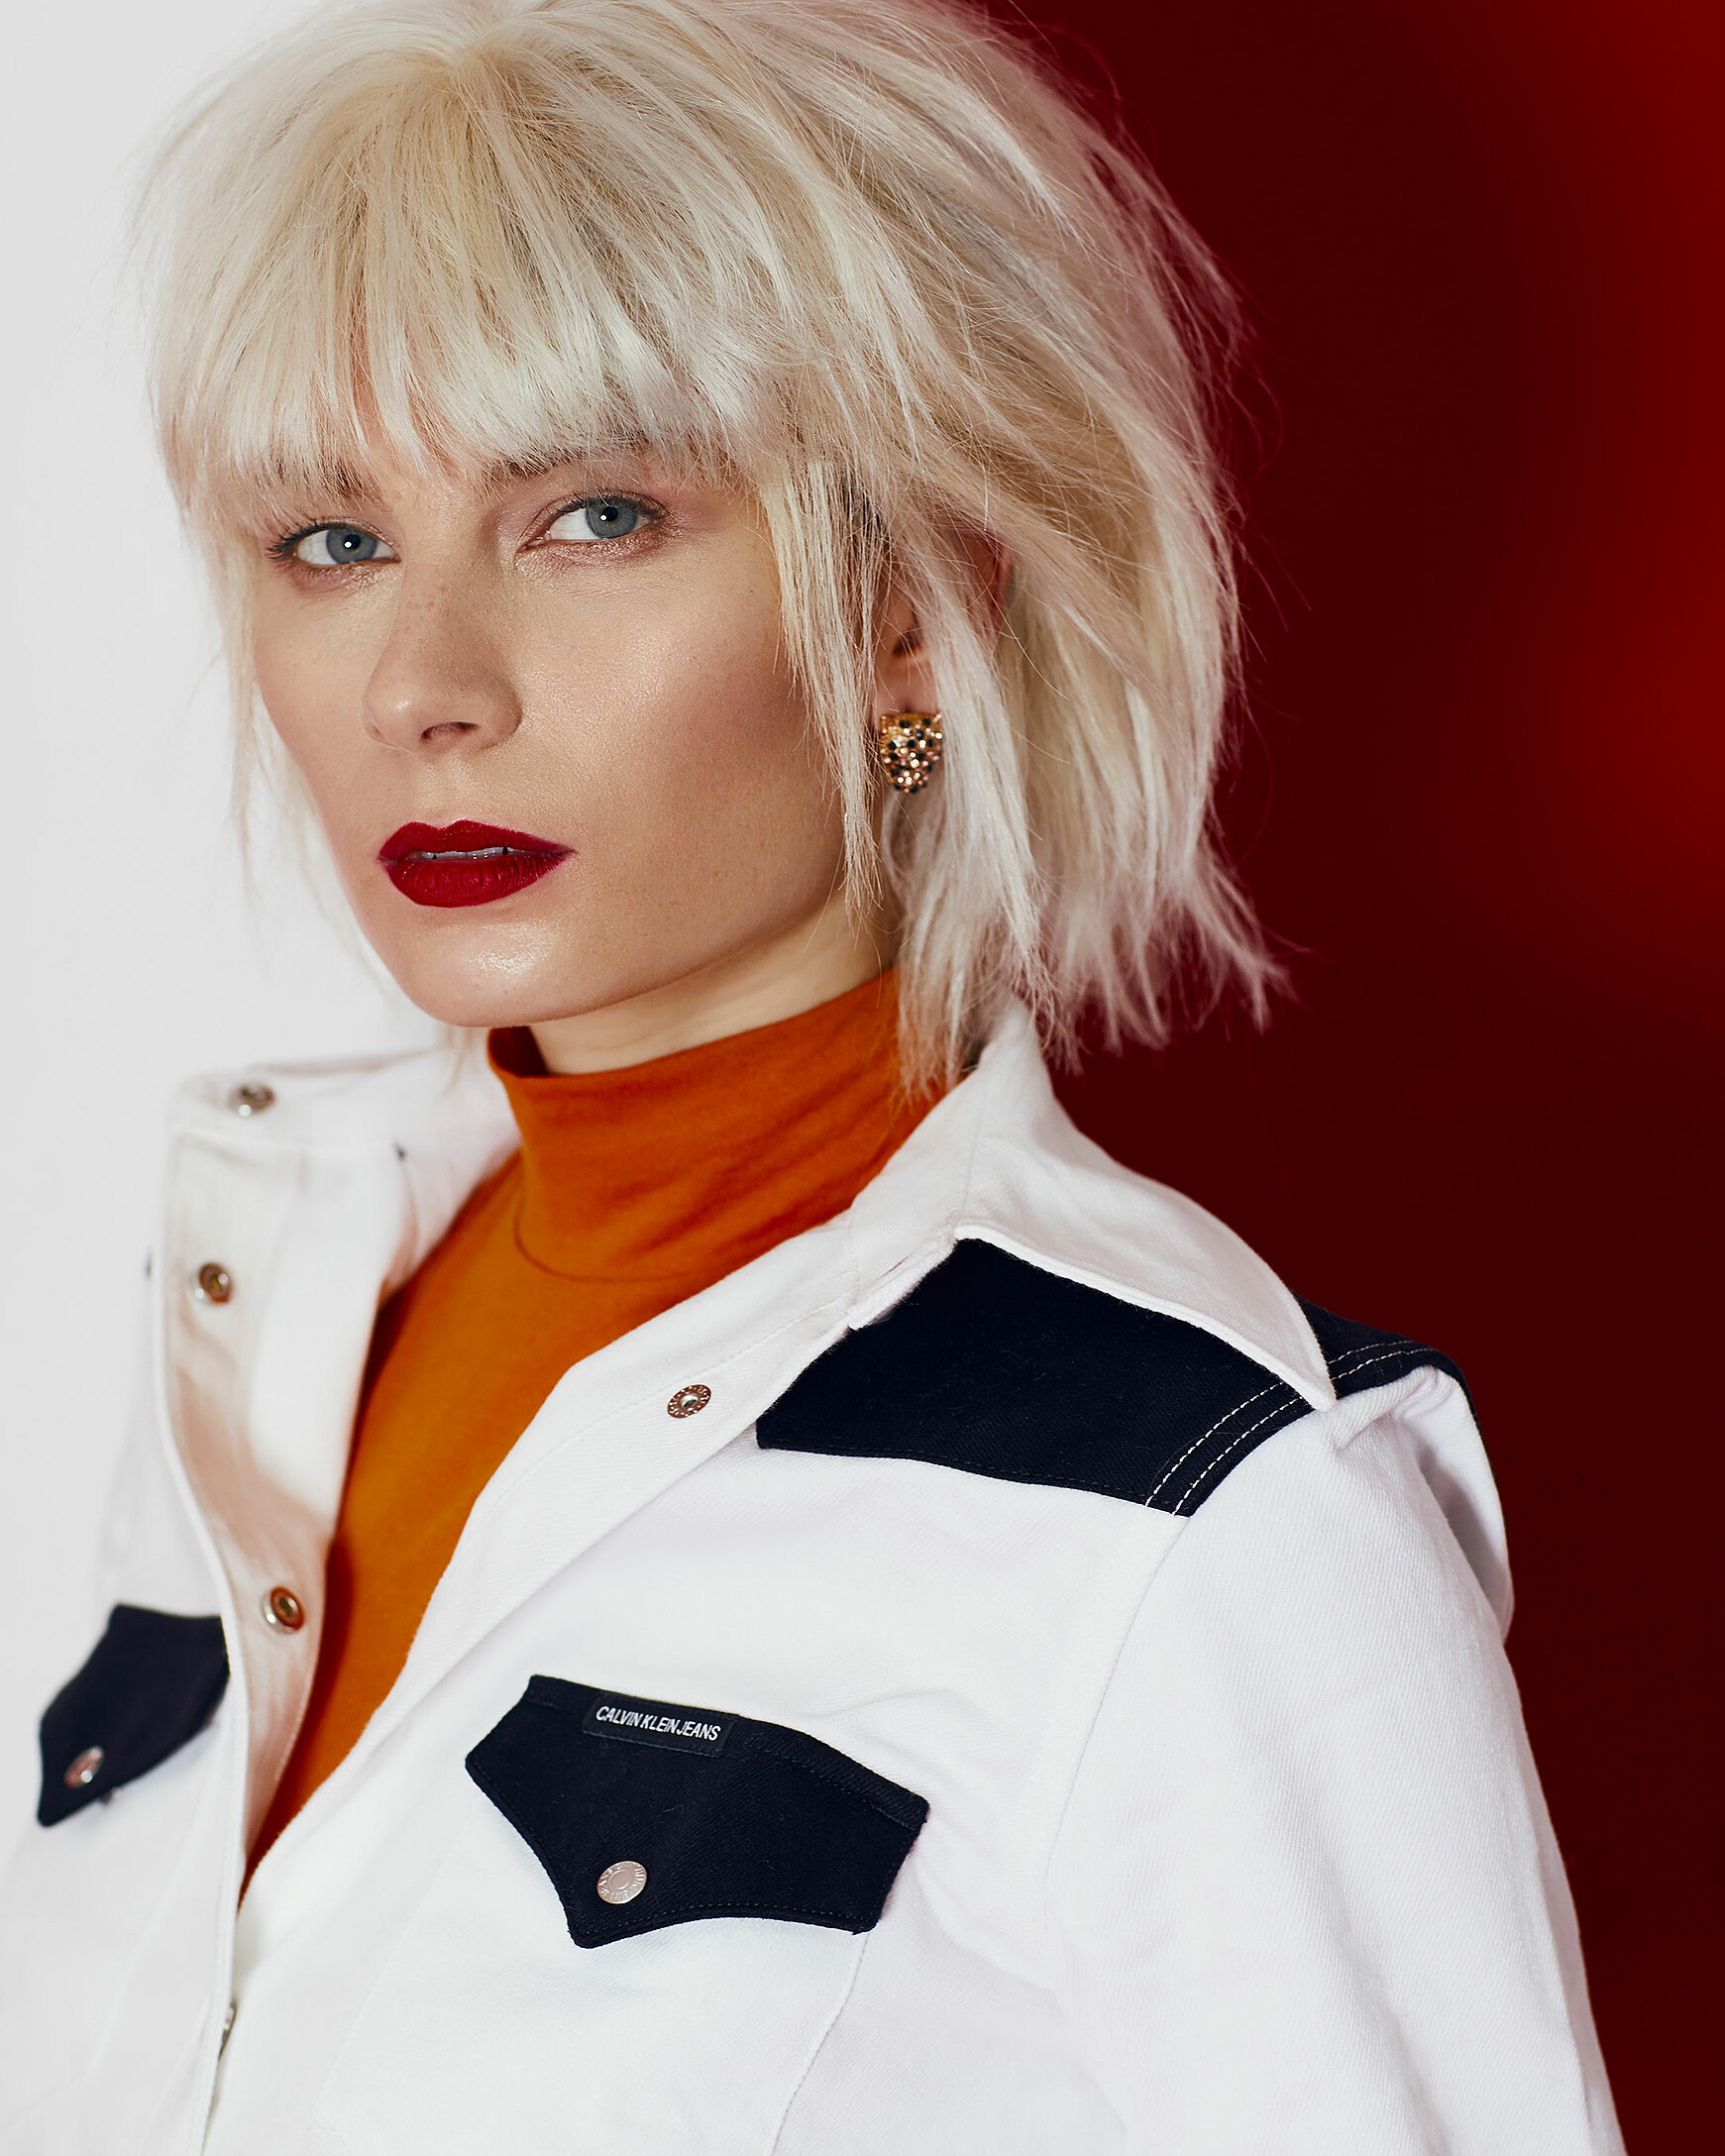 A close up of a female model with a blonde wig in denim white shirt and an orange pullover under it.